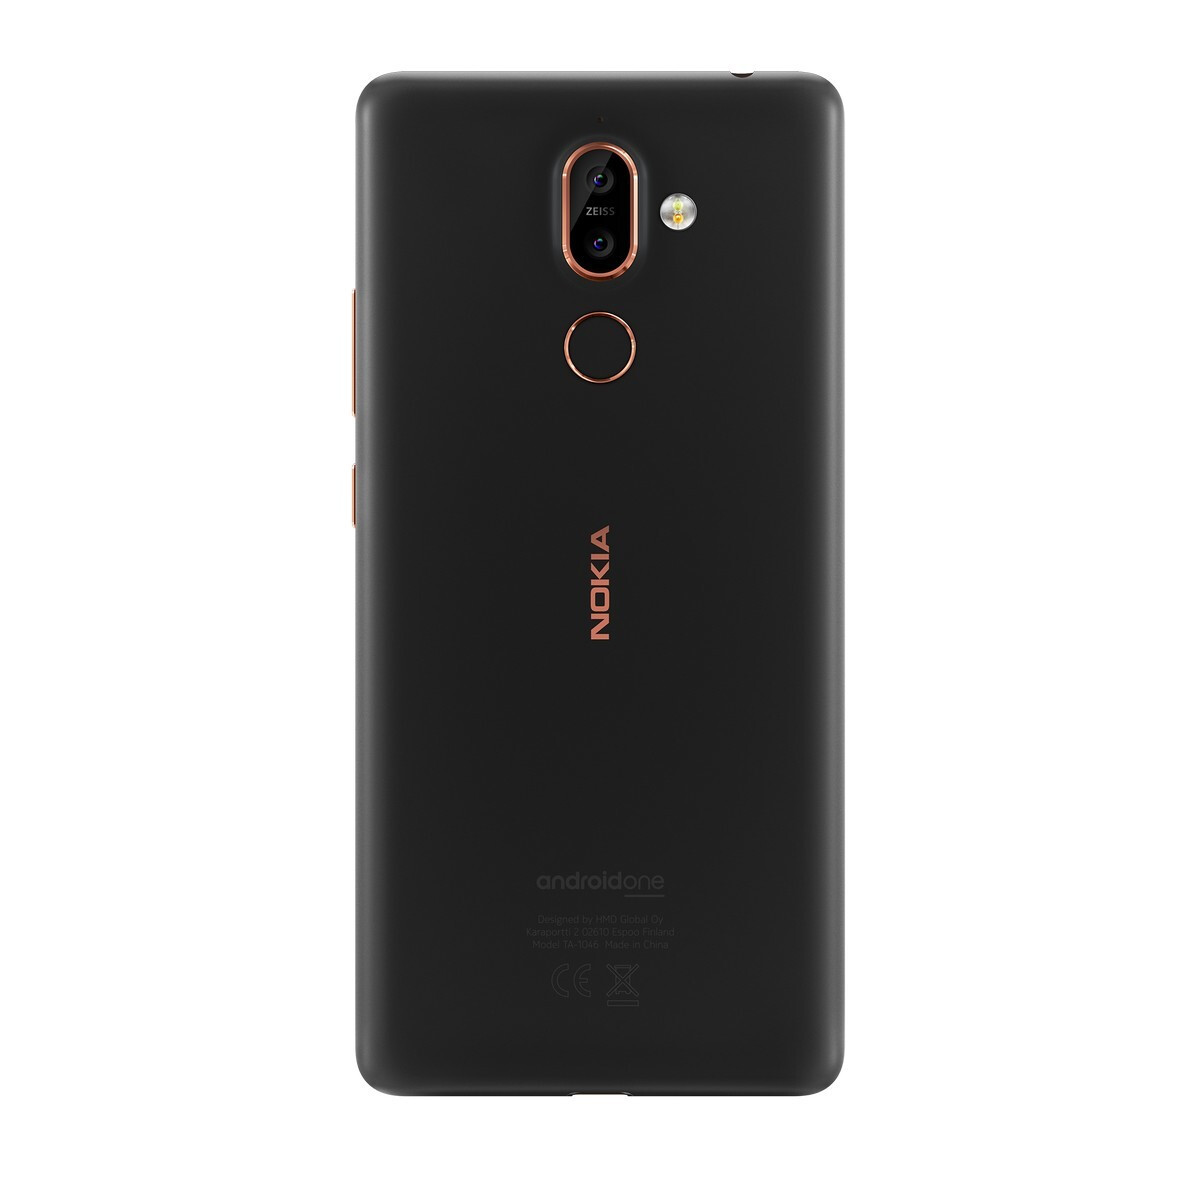 The Nokia 7 Plus May Be The Best Midrange Phone For The Price